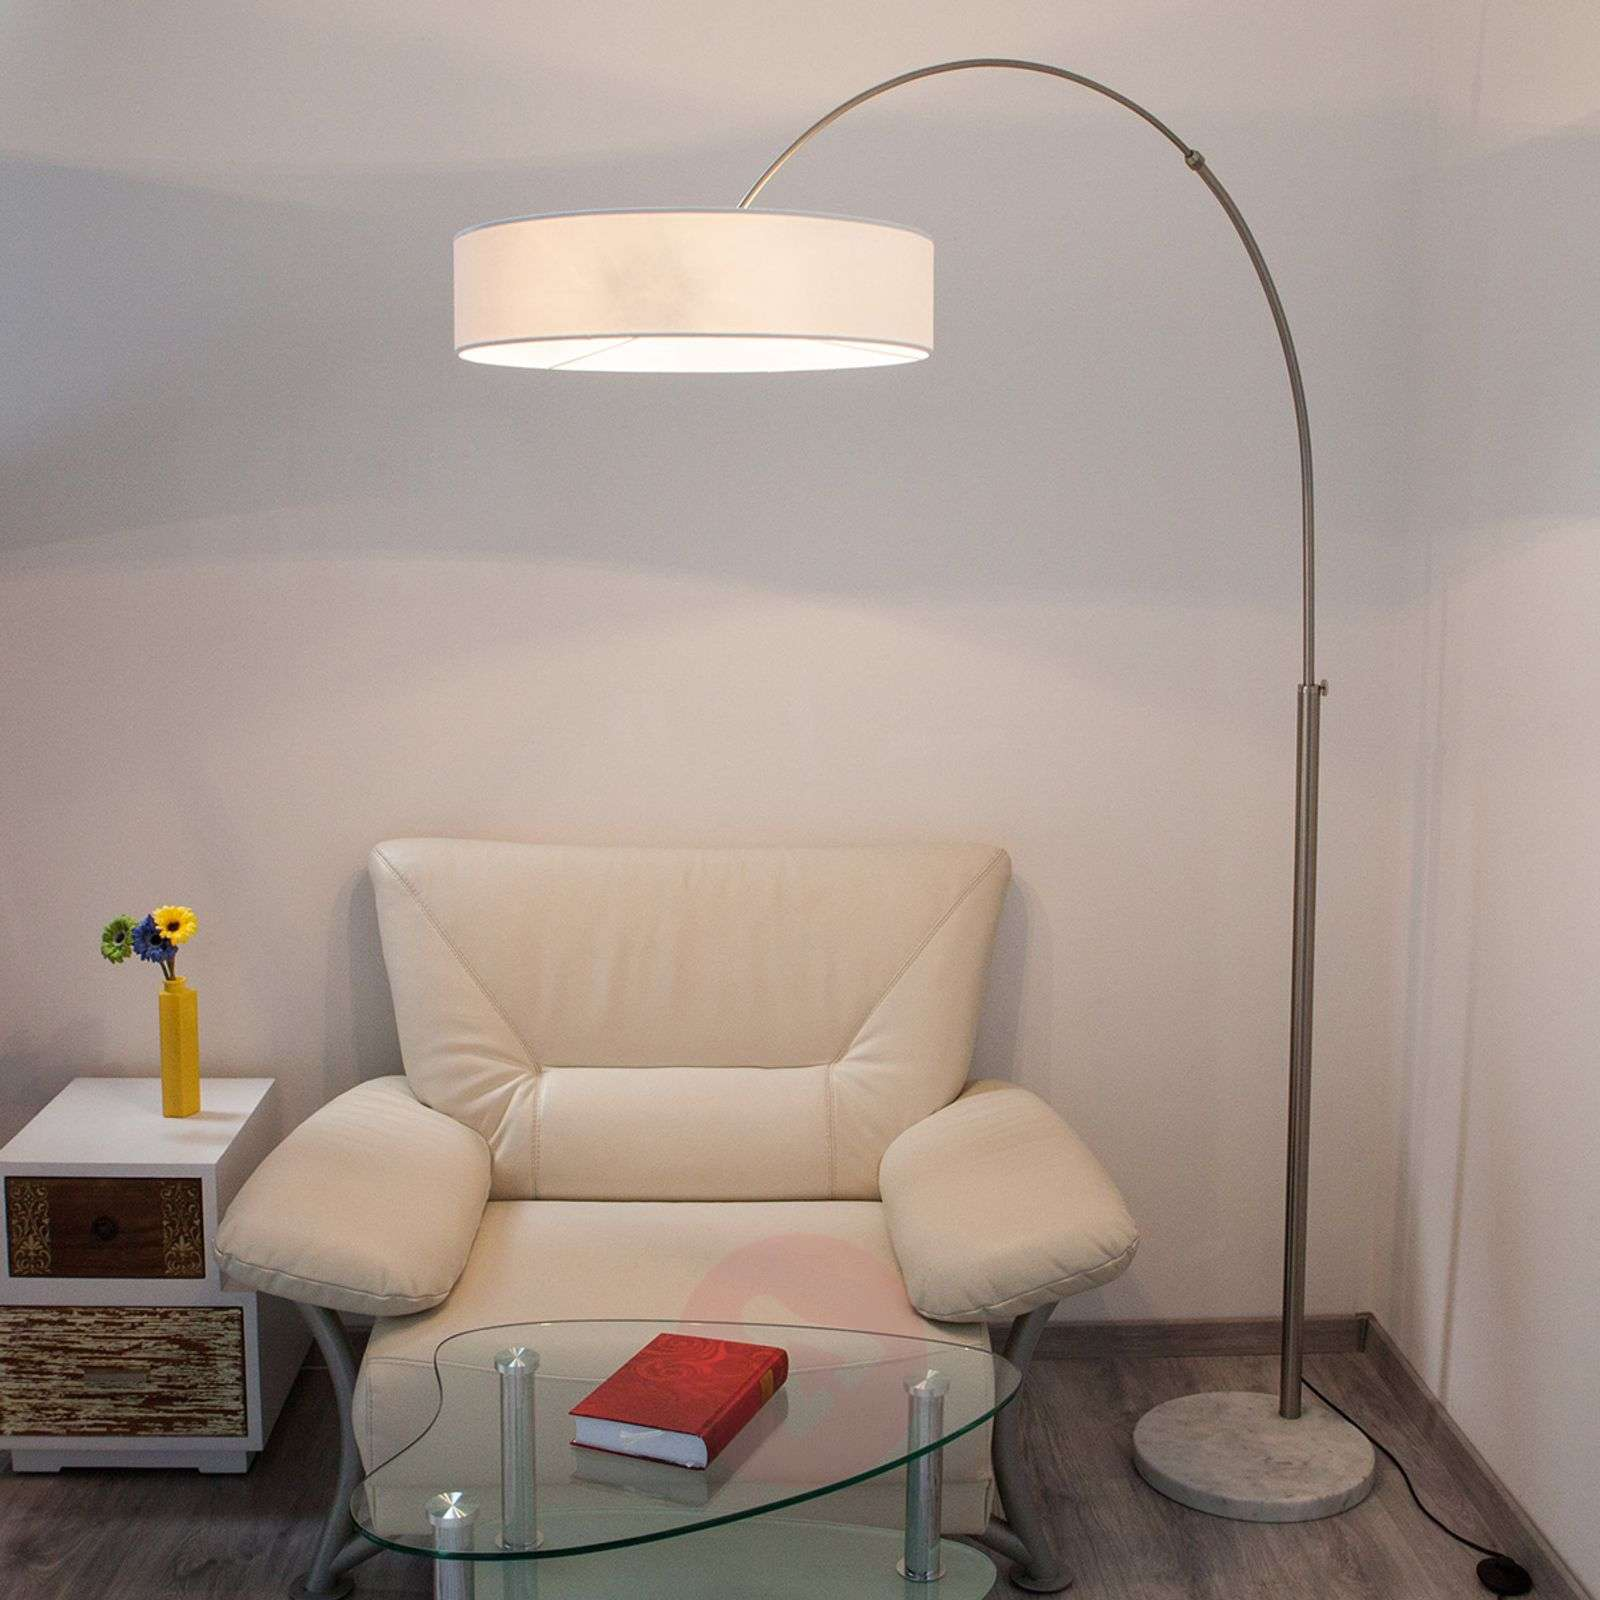 White Shing fabric floor lamp-9620142-01